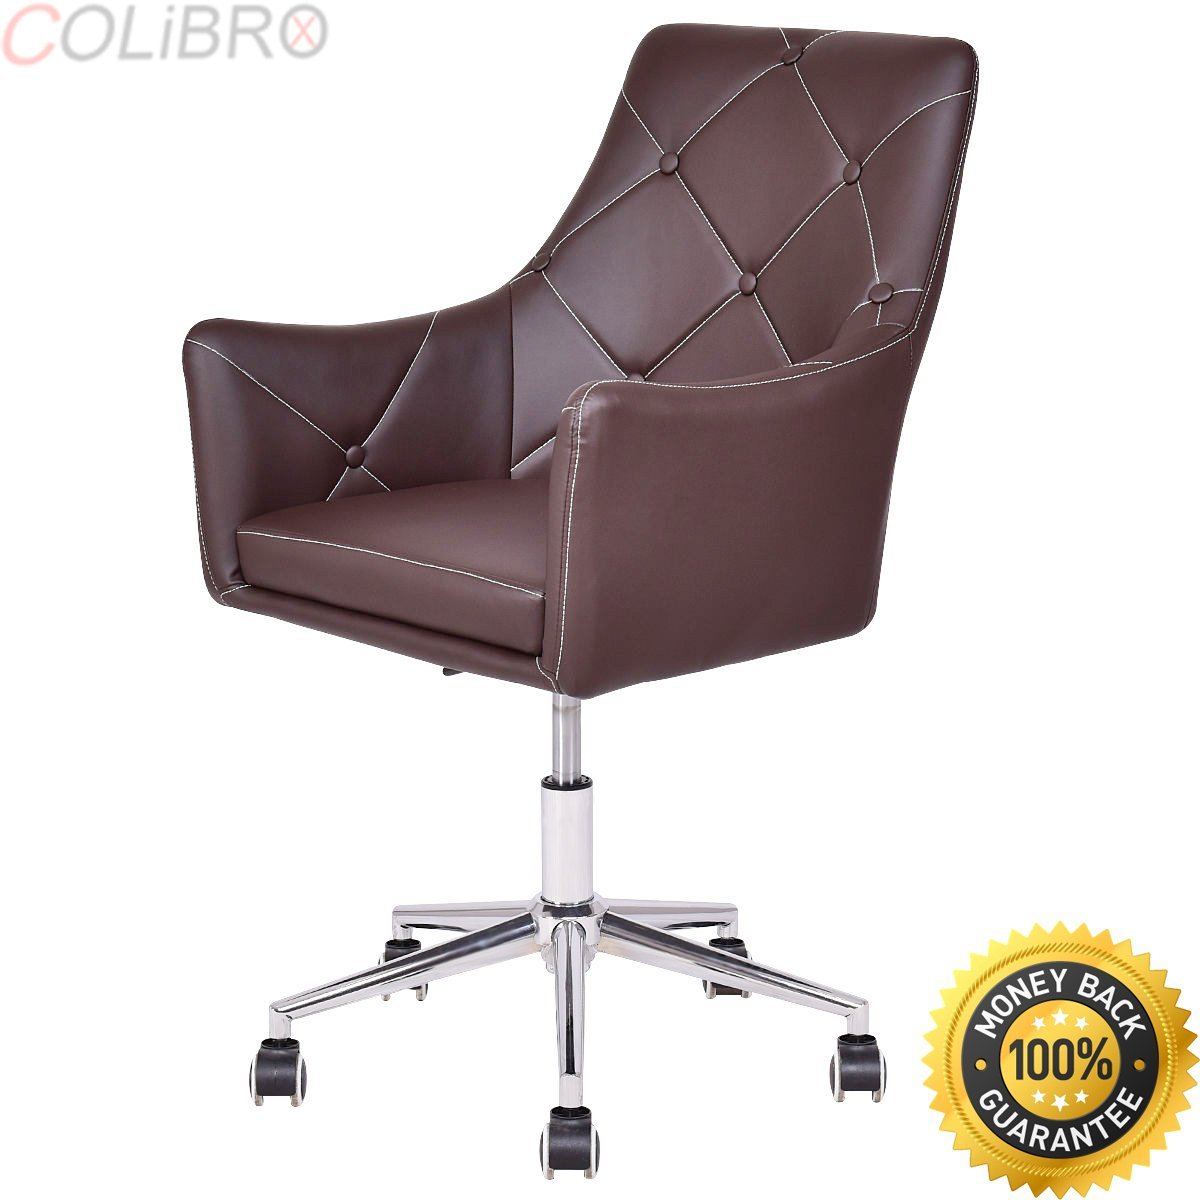 COLIBROX--Set of 2 Home Office Task Chair PU Leather Swivel Adjustable Tufted Back Rolling. desk chair walmart. desk chair amazon. comfortable desk chair. ergonomic desk chairs. best office chairs.